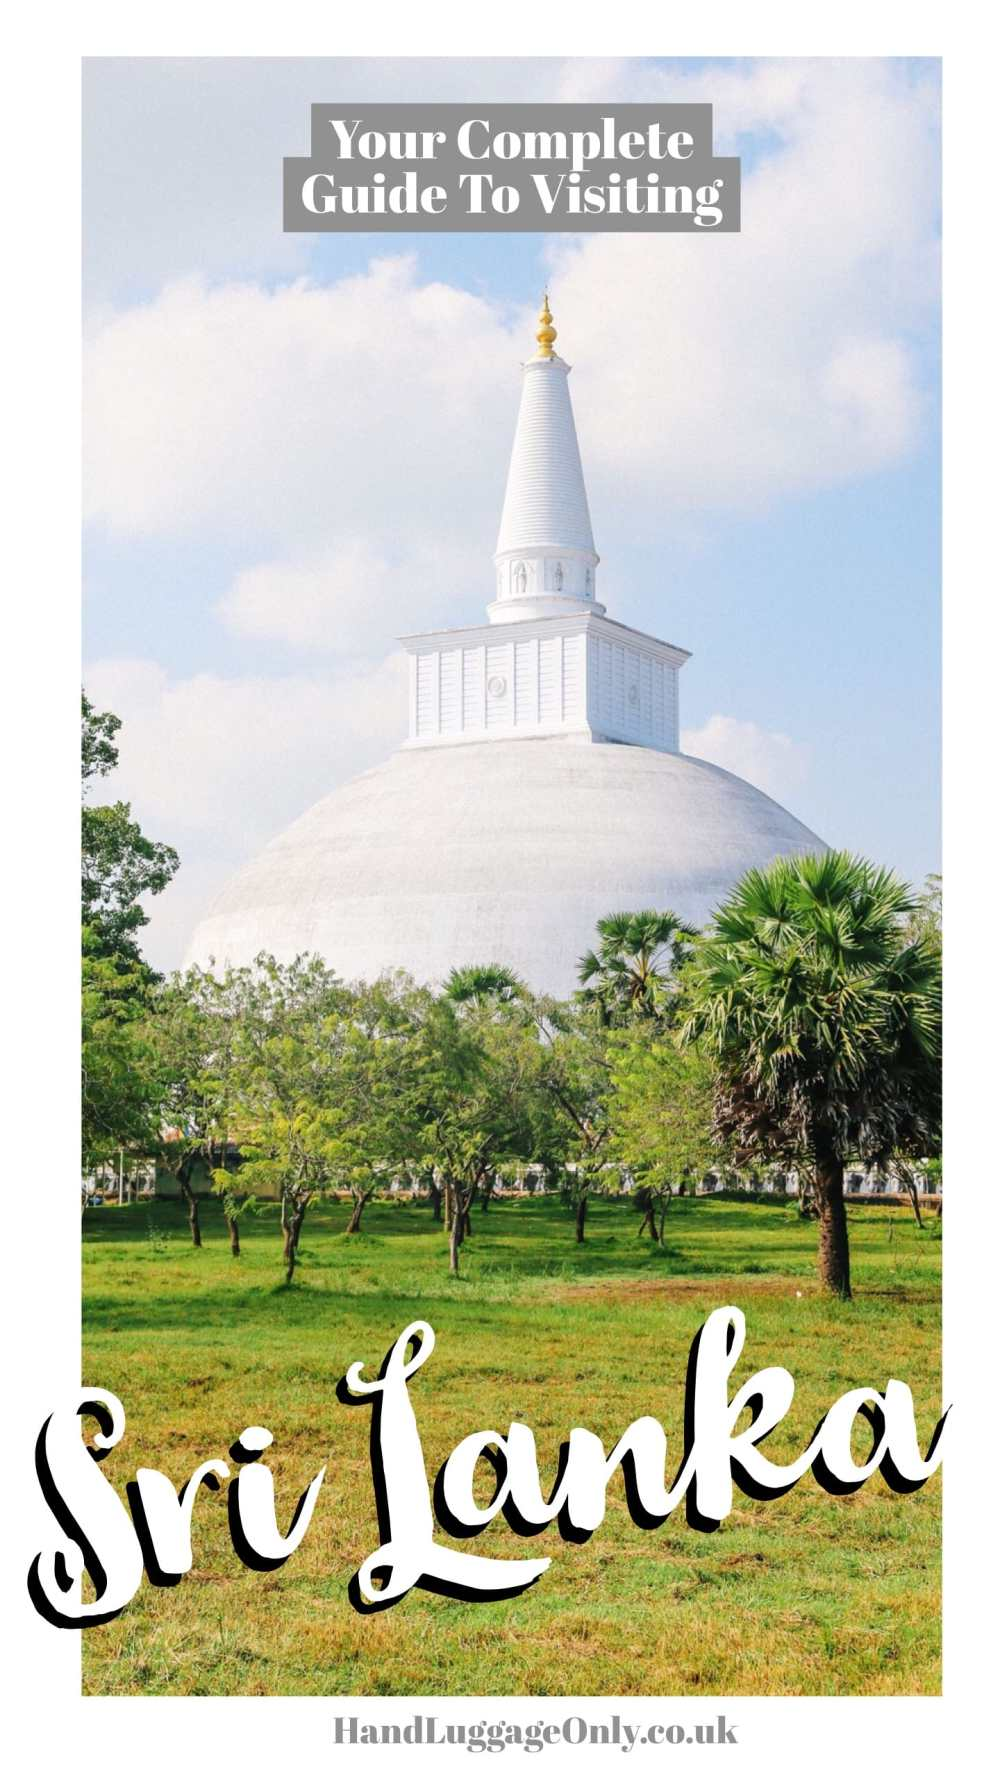 Your Complete Guide Of Things To Do In Sri Lanka (2)